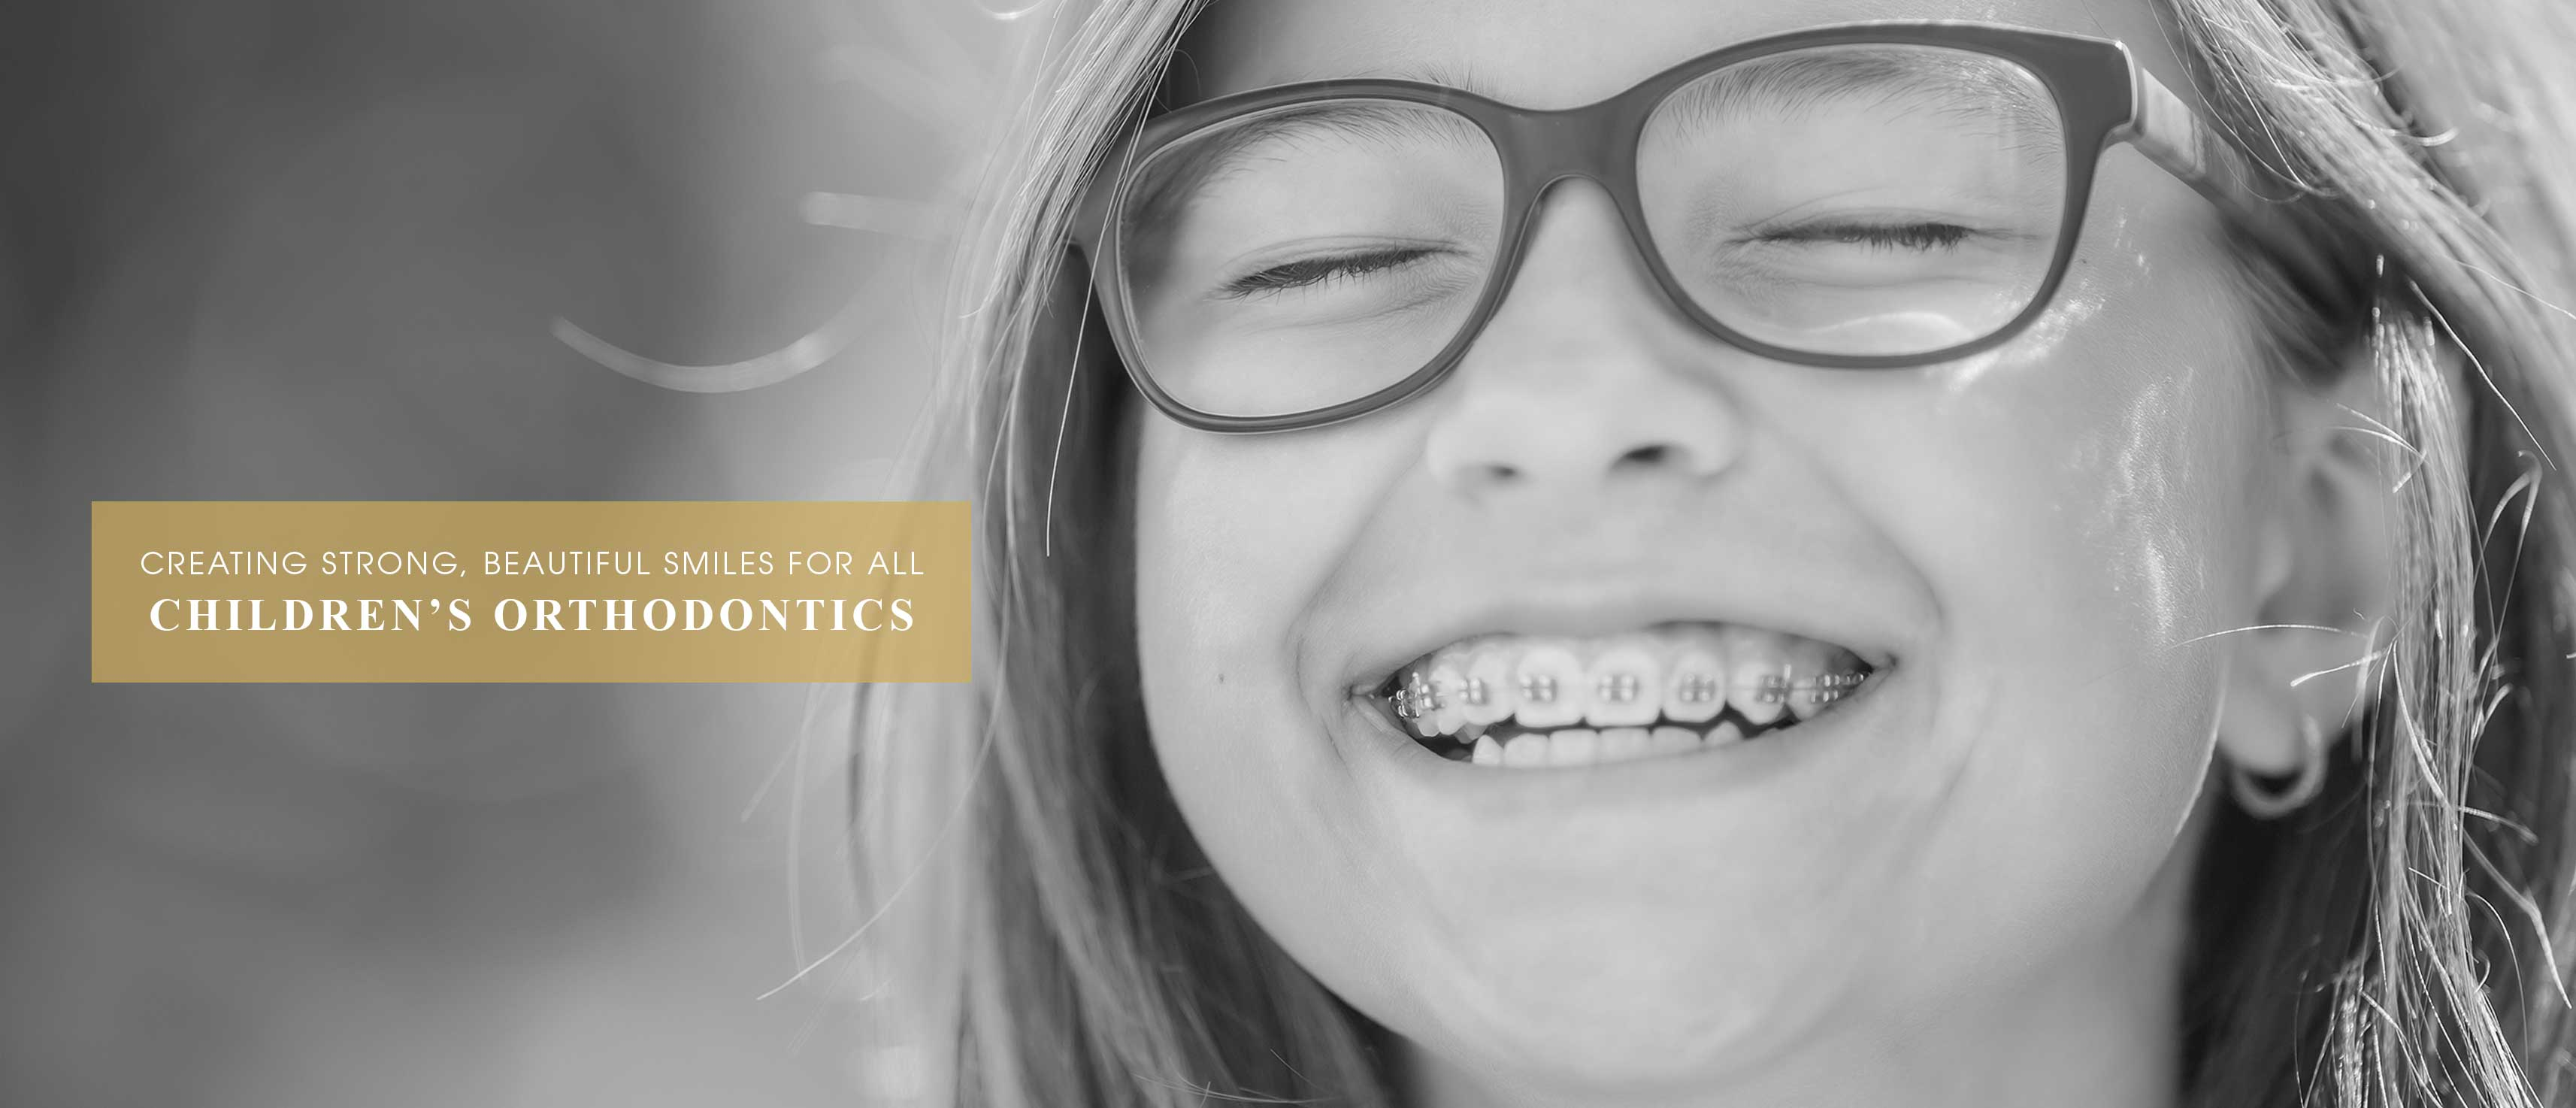 Creating strong, beautiful smiles for all. Children's Orthodontics.